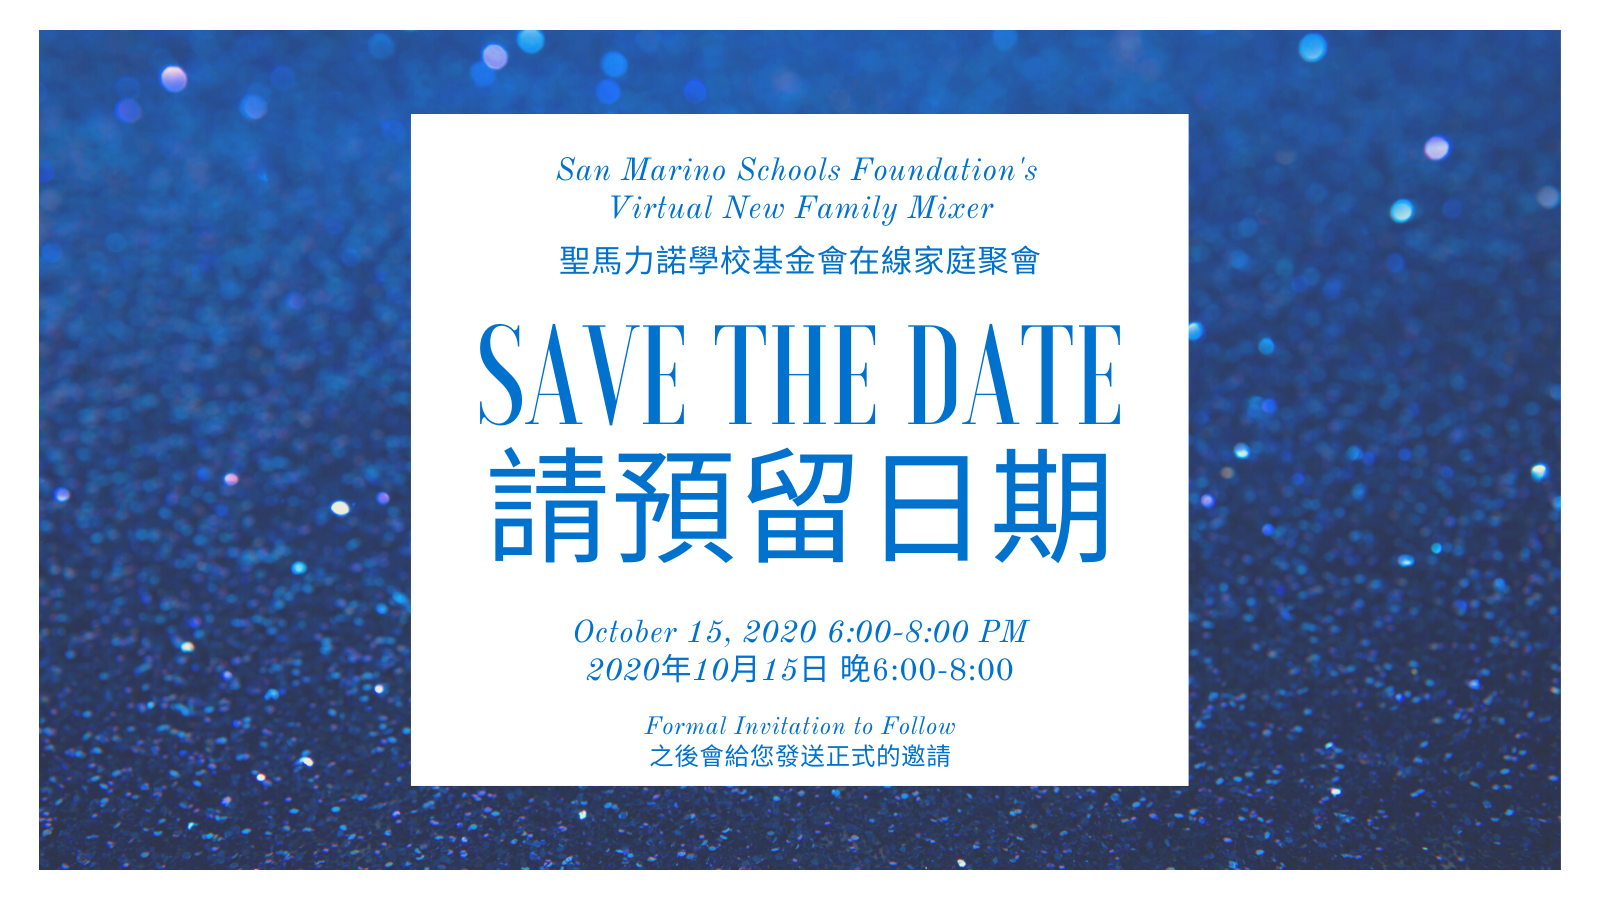 New Family Mixer Save the Date!